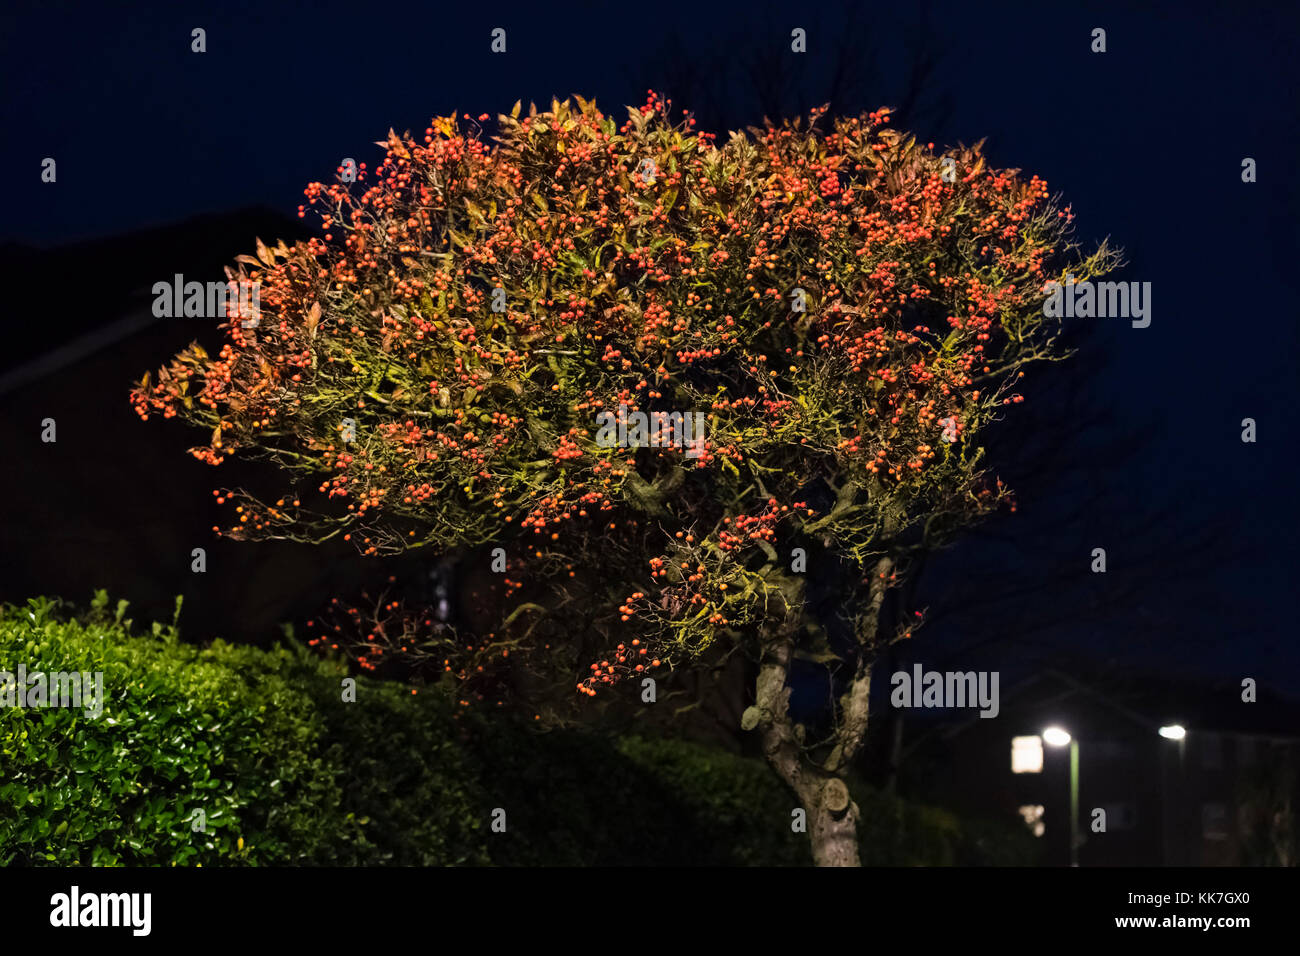 Tree at night with red berries lit by streetlamp in the UK. - Stock Image